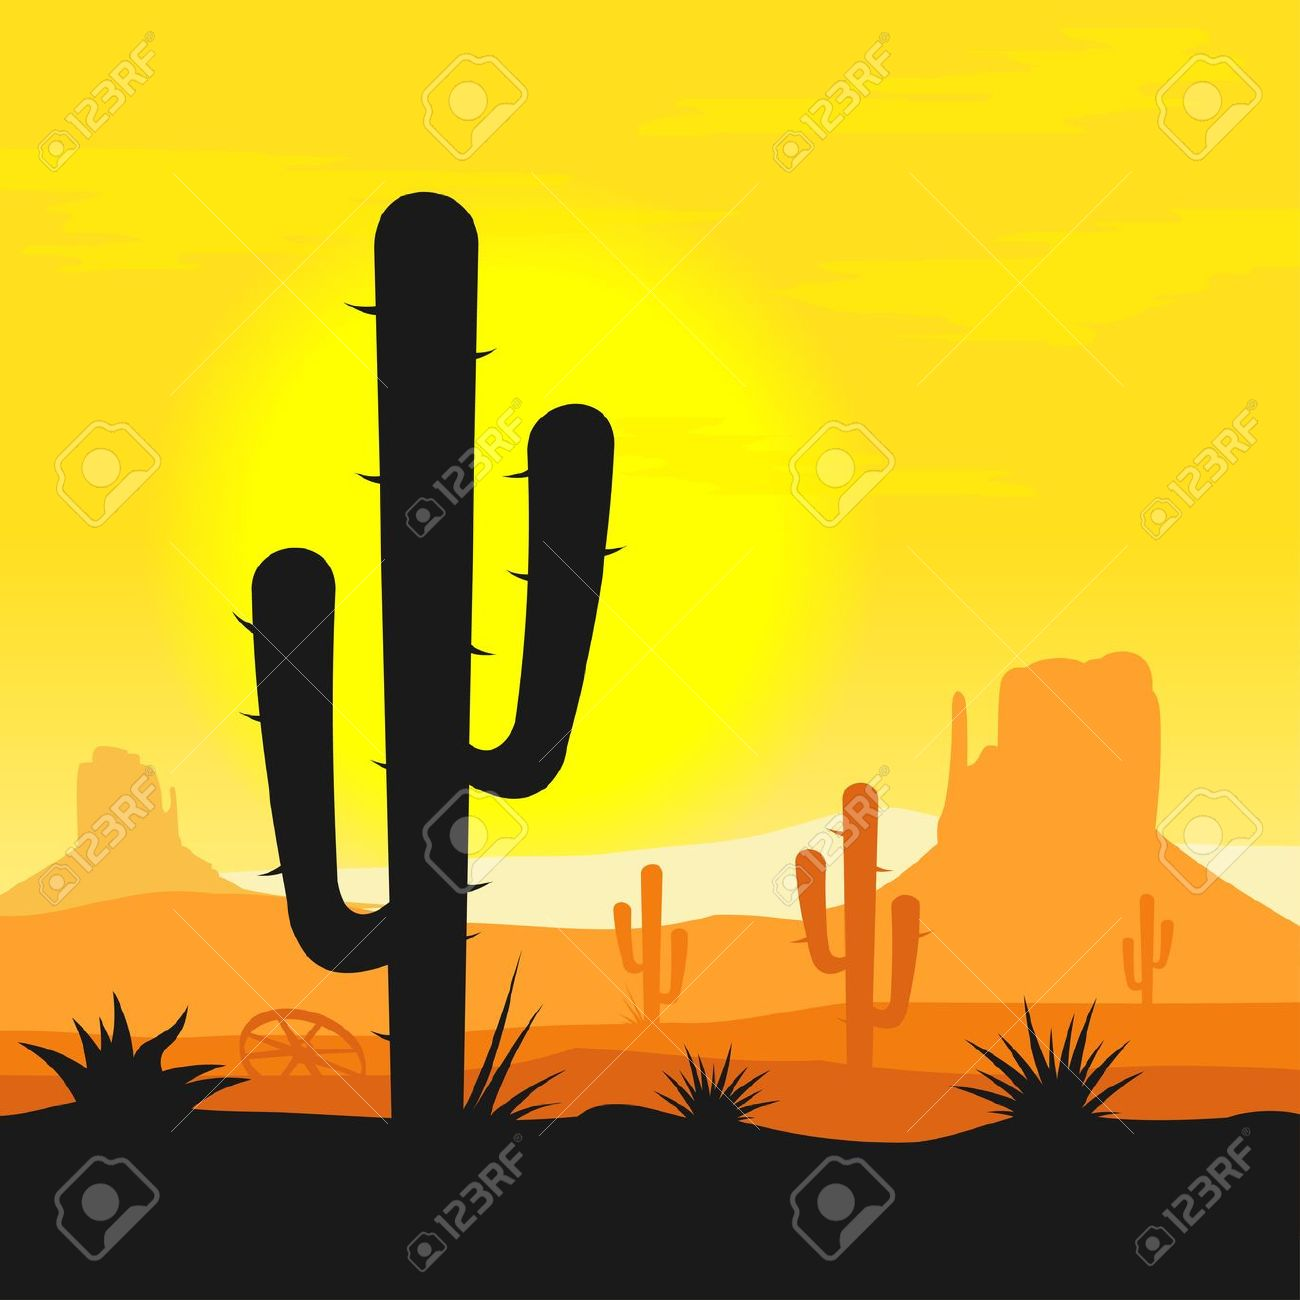 Arizona Desert Clip Art.